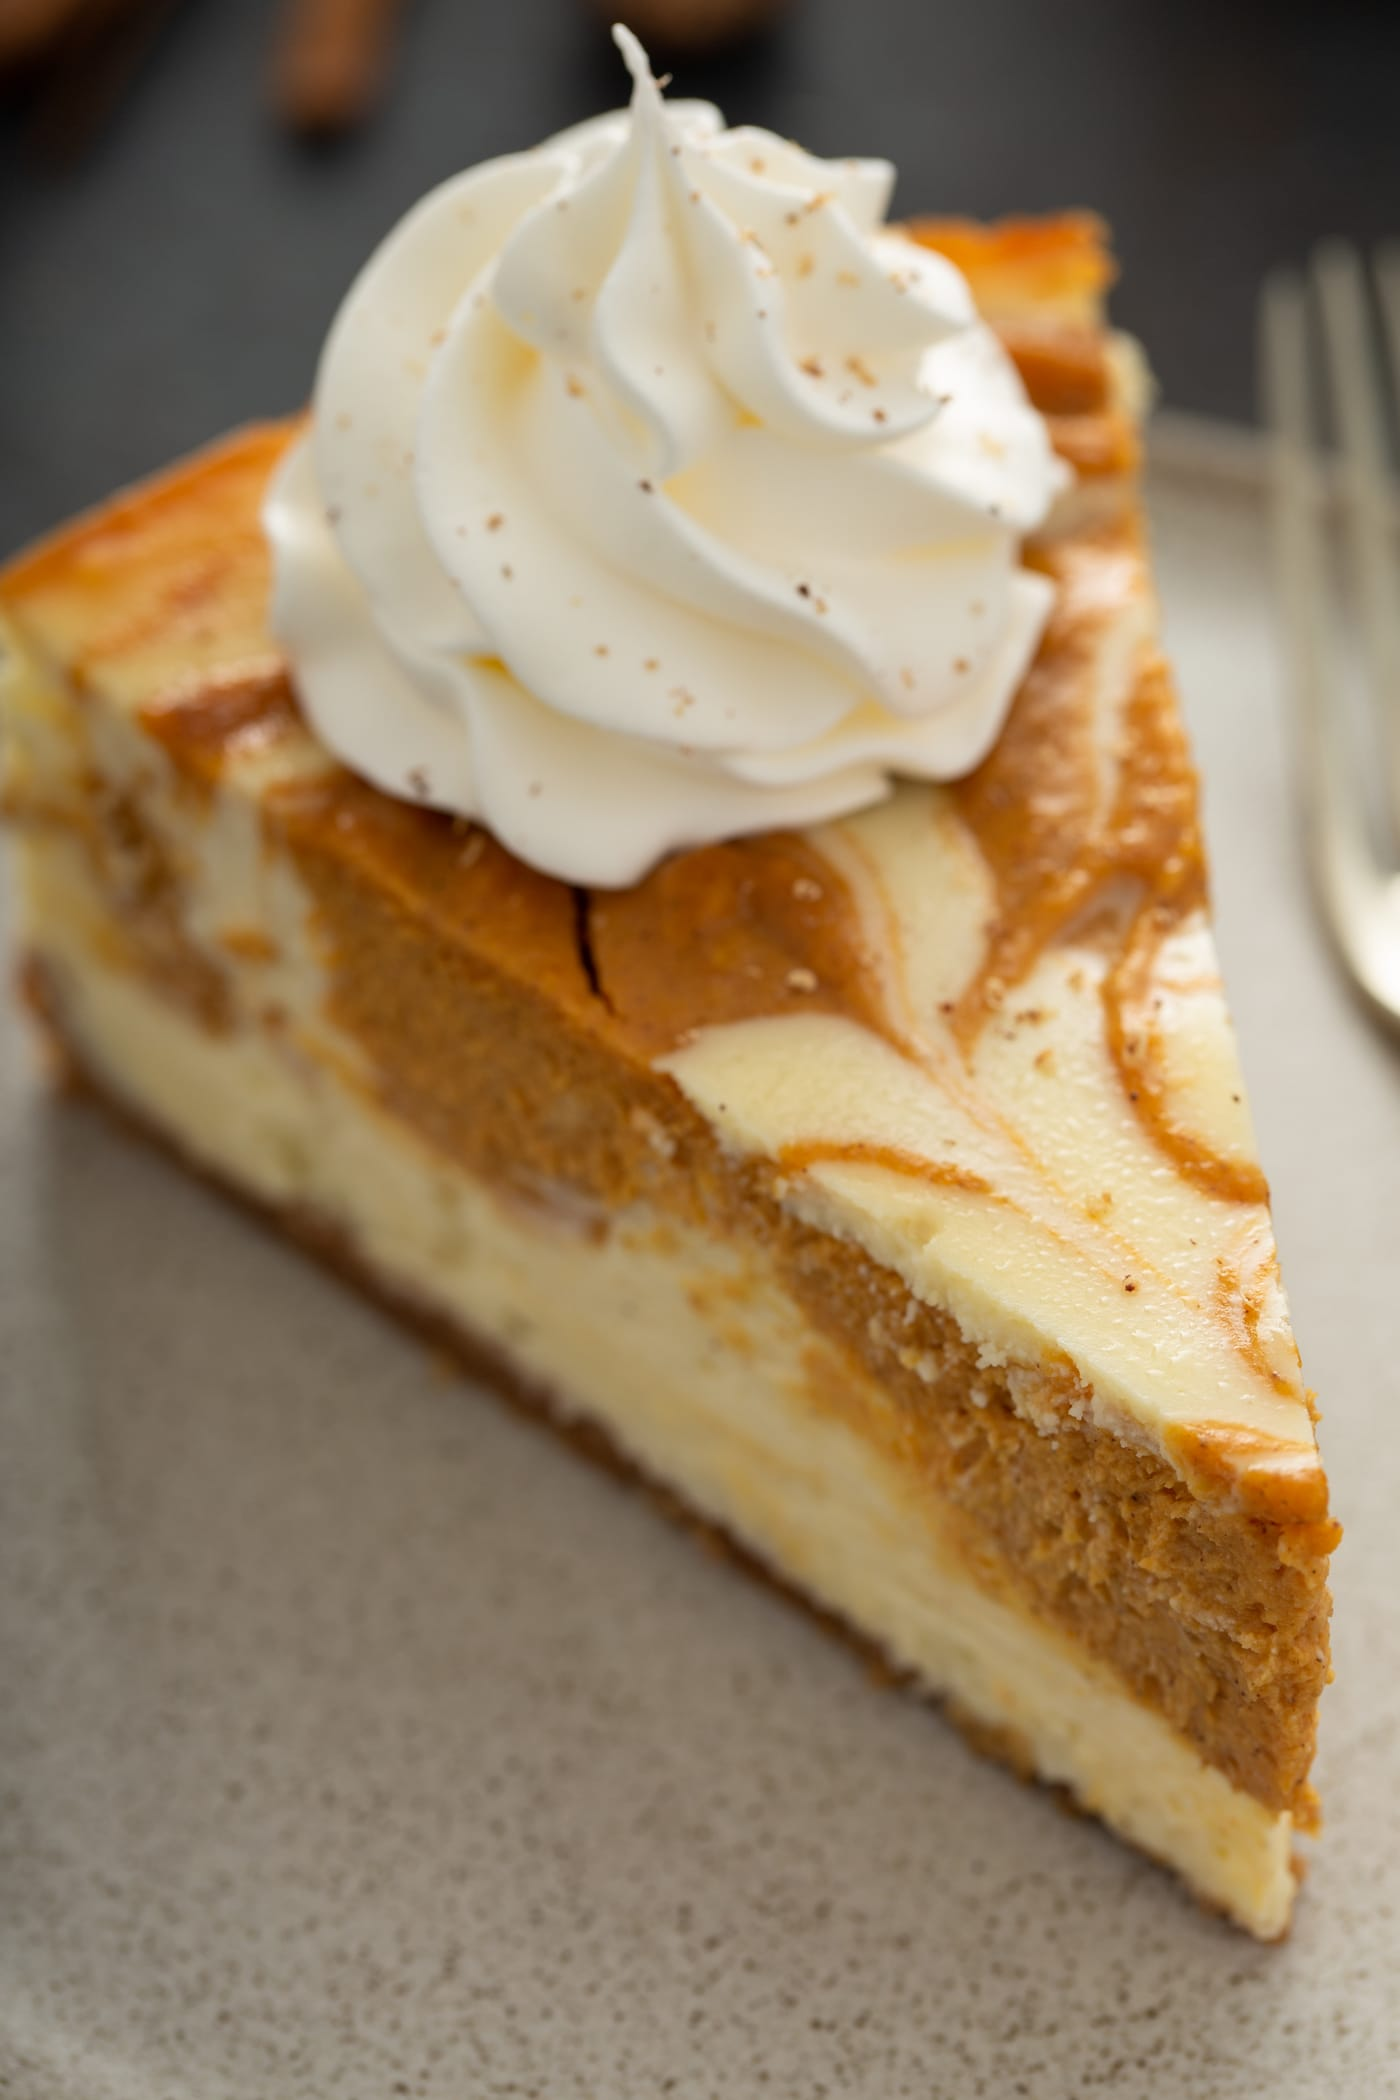 A slice of swirled pumpkin cheesecake with a dollop of whipped cream on top.